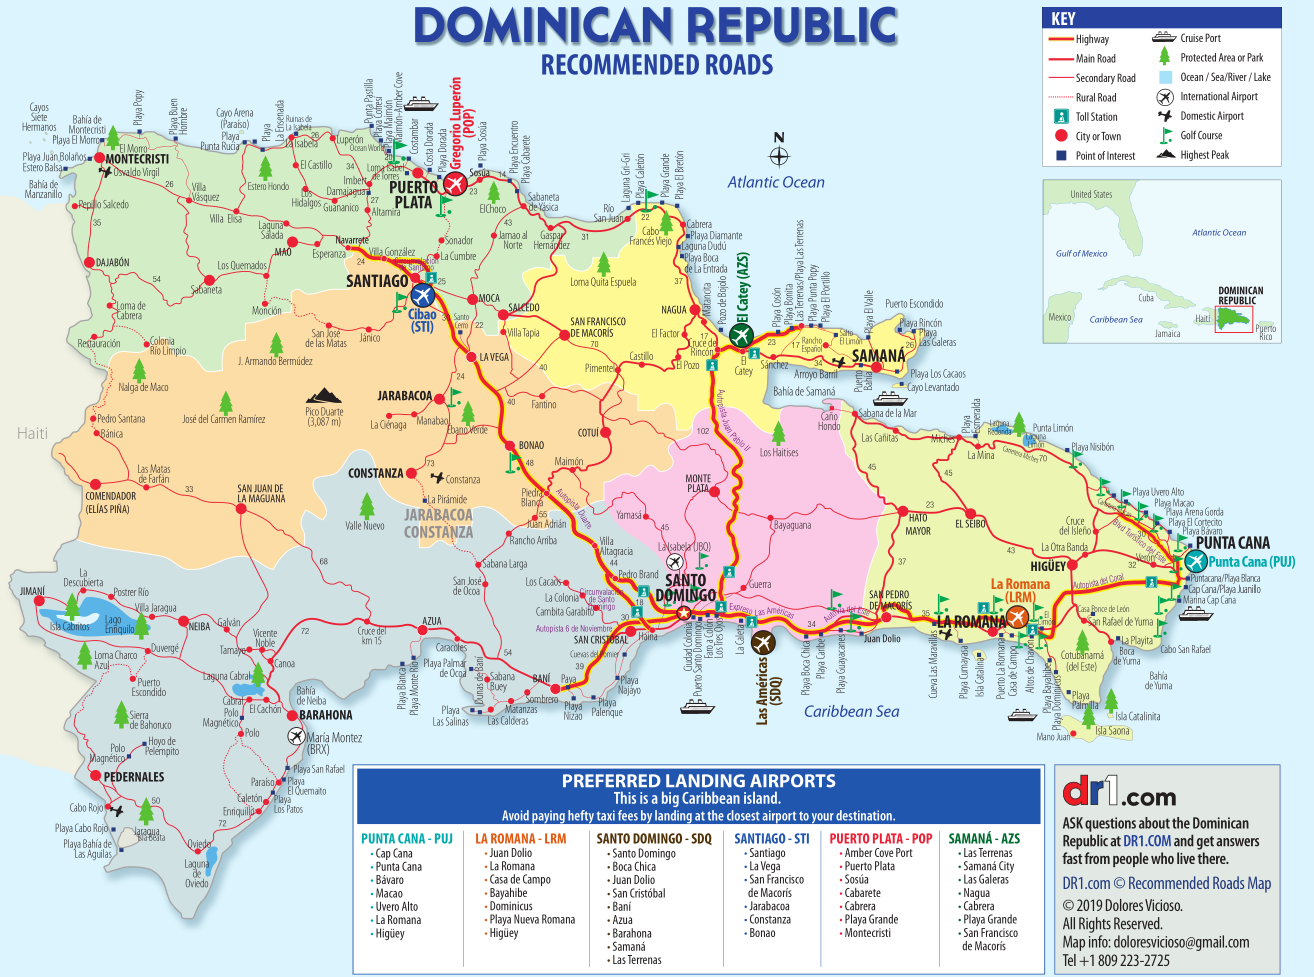 DR1.com Map of Dominican Republic